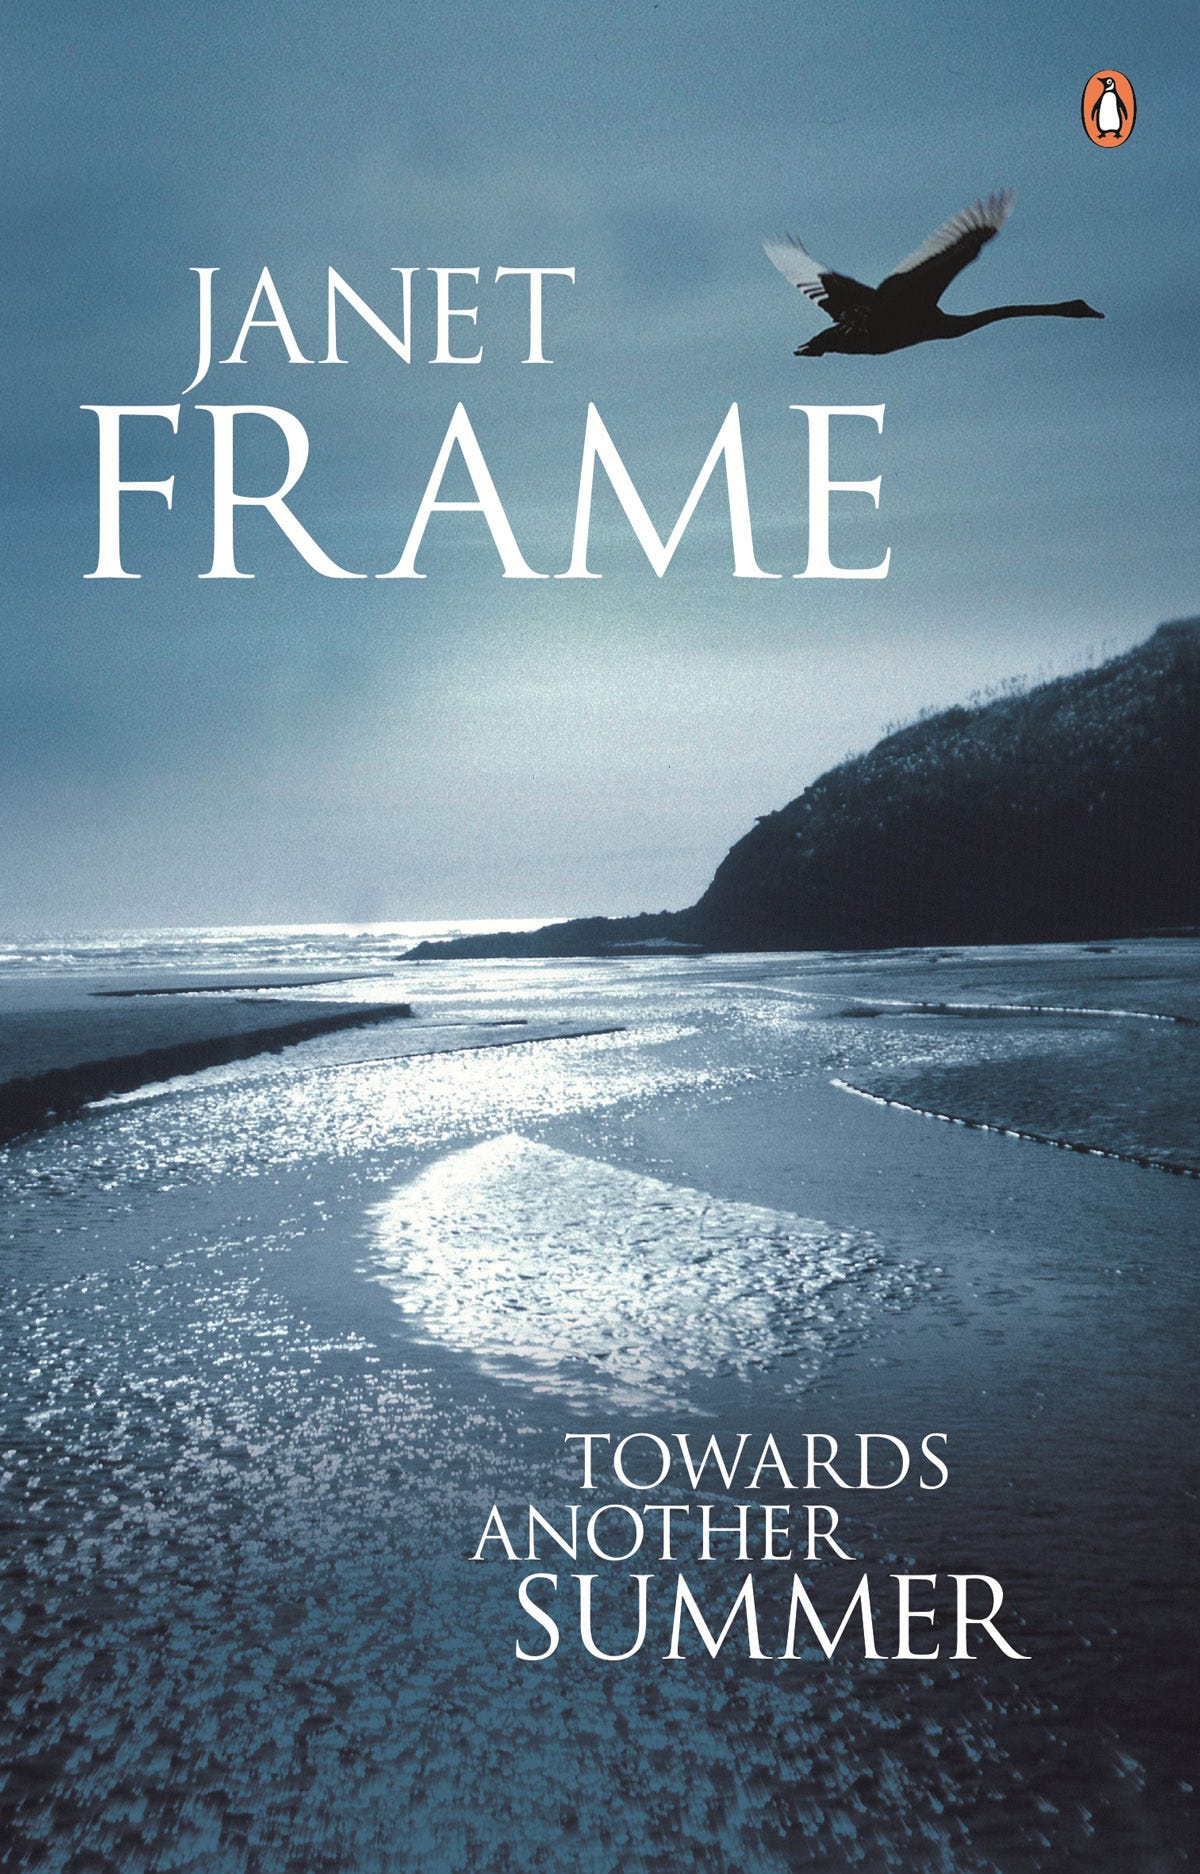 Towards Another Summer (by Janet Frame) Book Cover